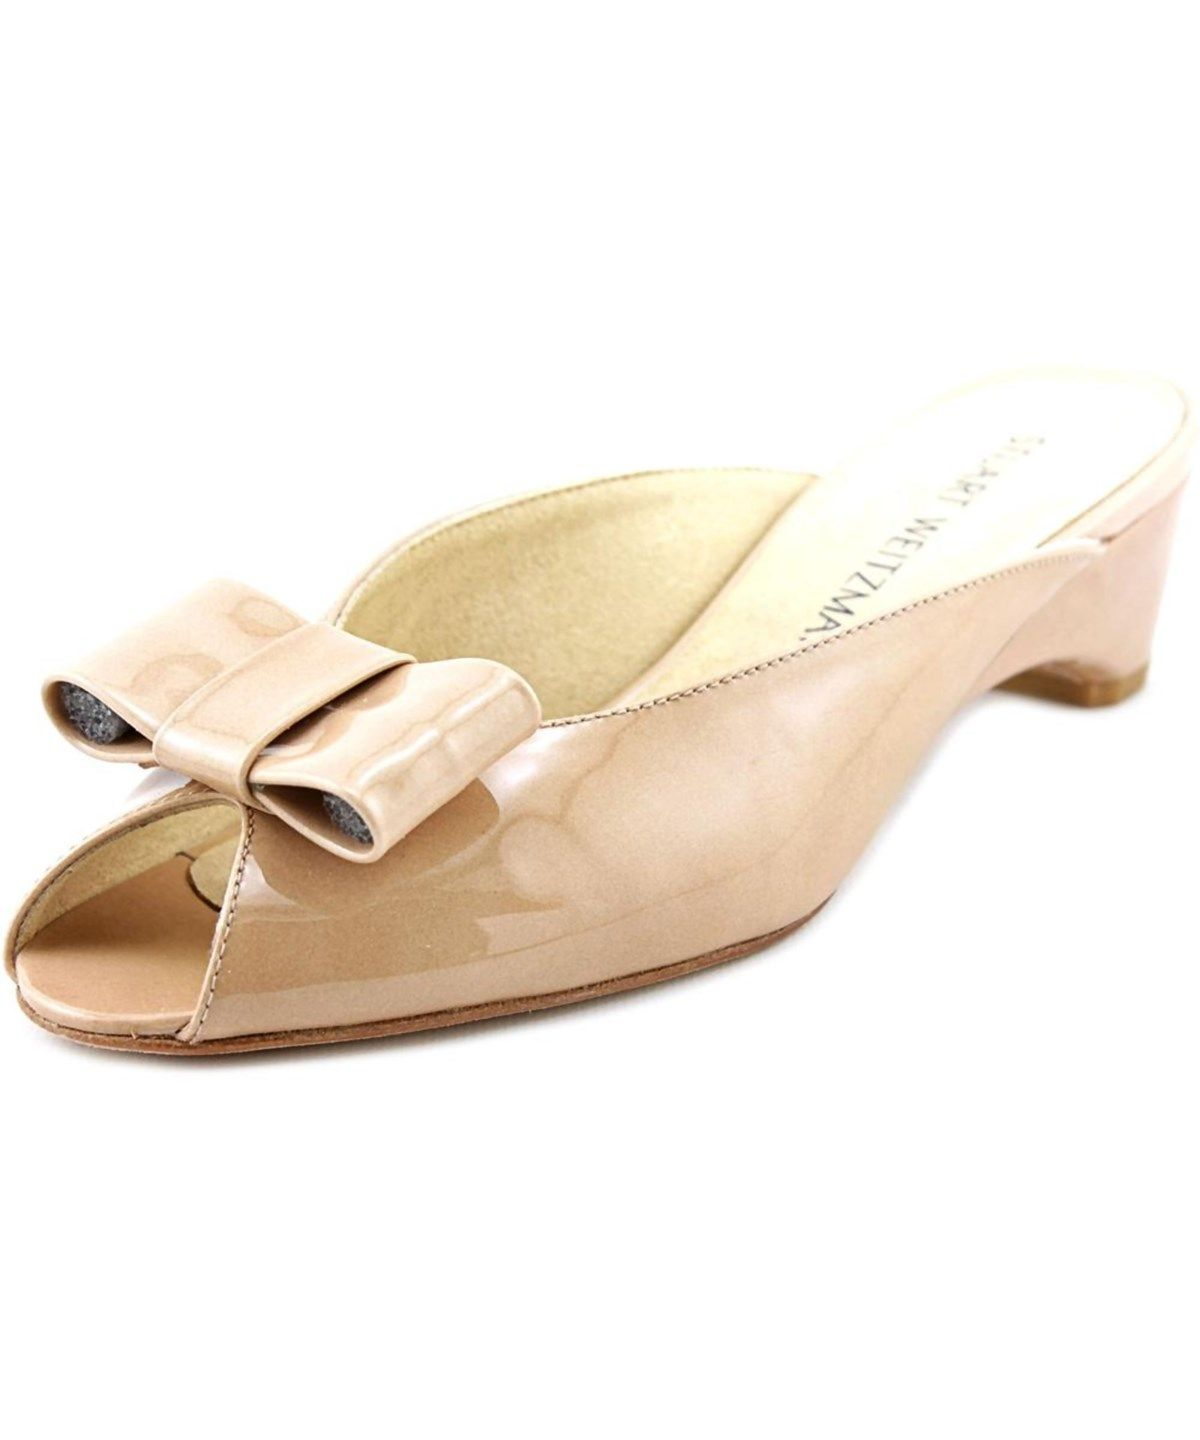 40086eb2a28 STUART WEITZMAN Stuart Weitzman Candy Women Open Toe Patent Leather Nude  Slides Sandal .  stuartweitzman  shoes  sandals